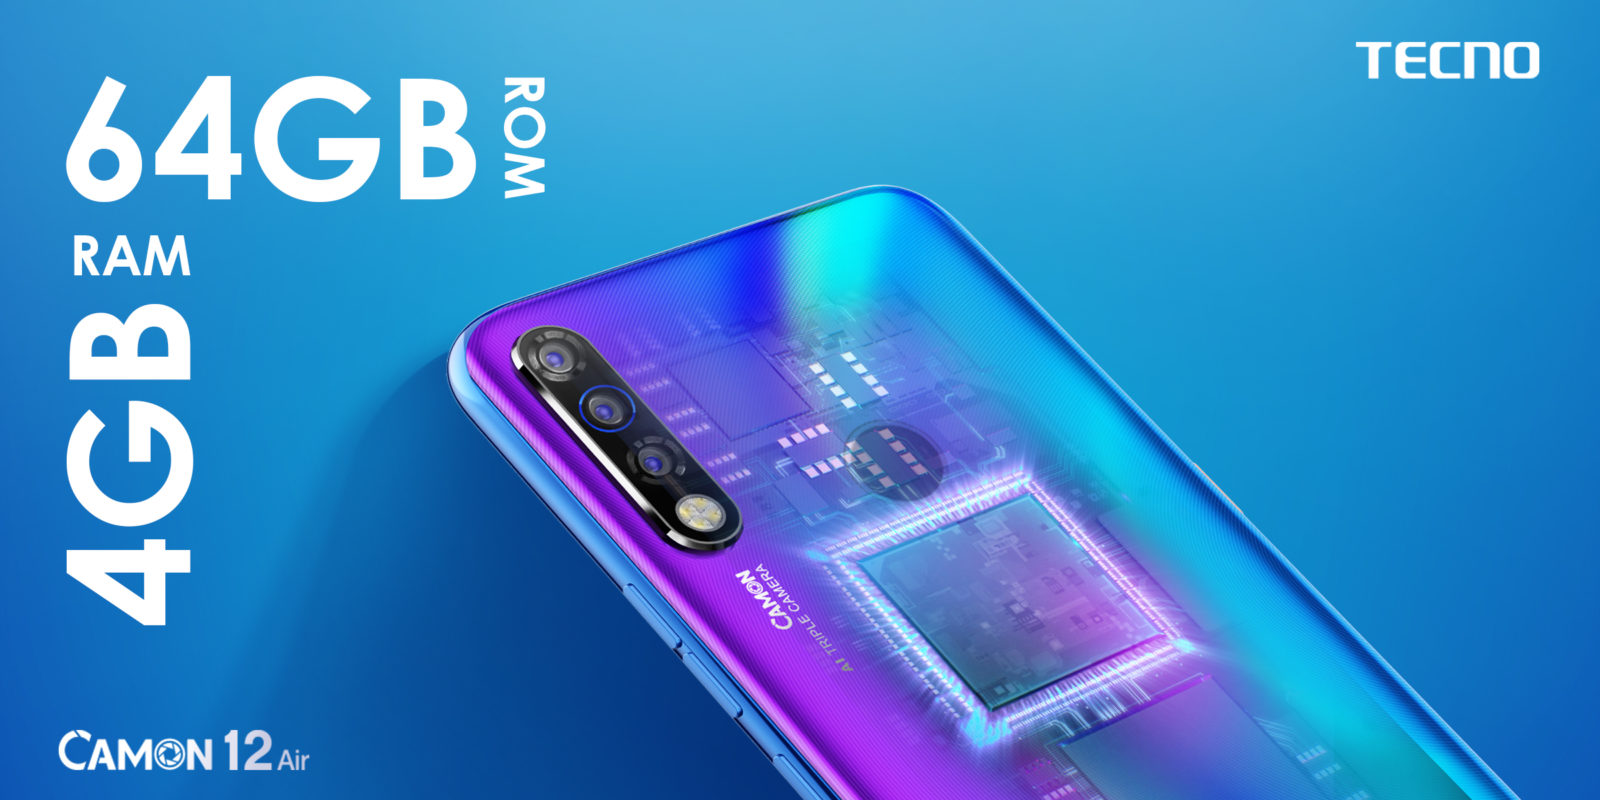 Tecno Camon 12 Air Offers a Punch Hole Display on a Budget